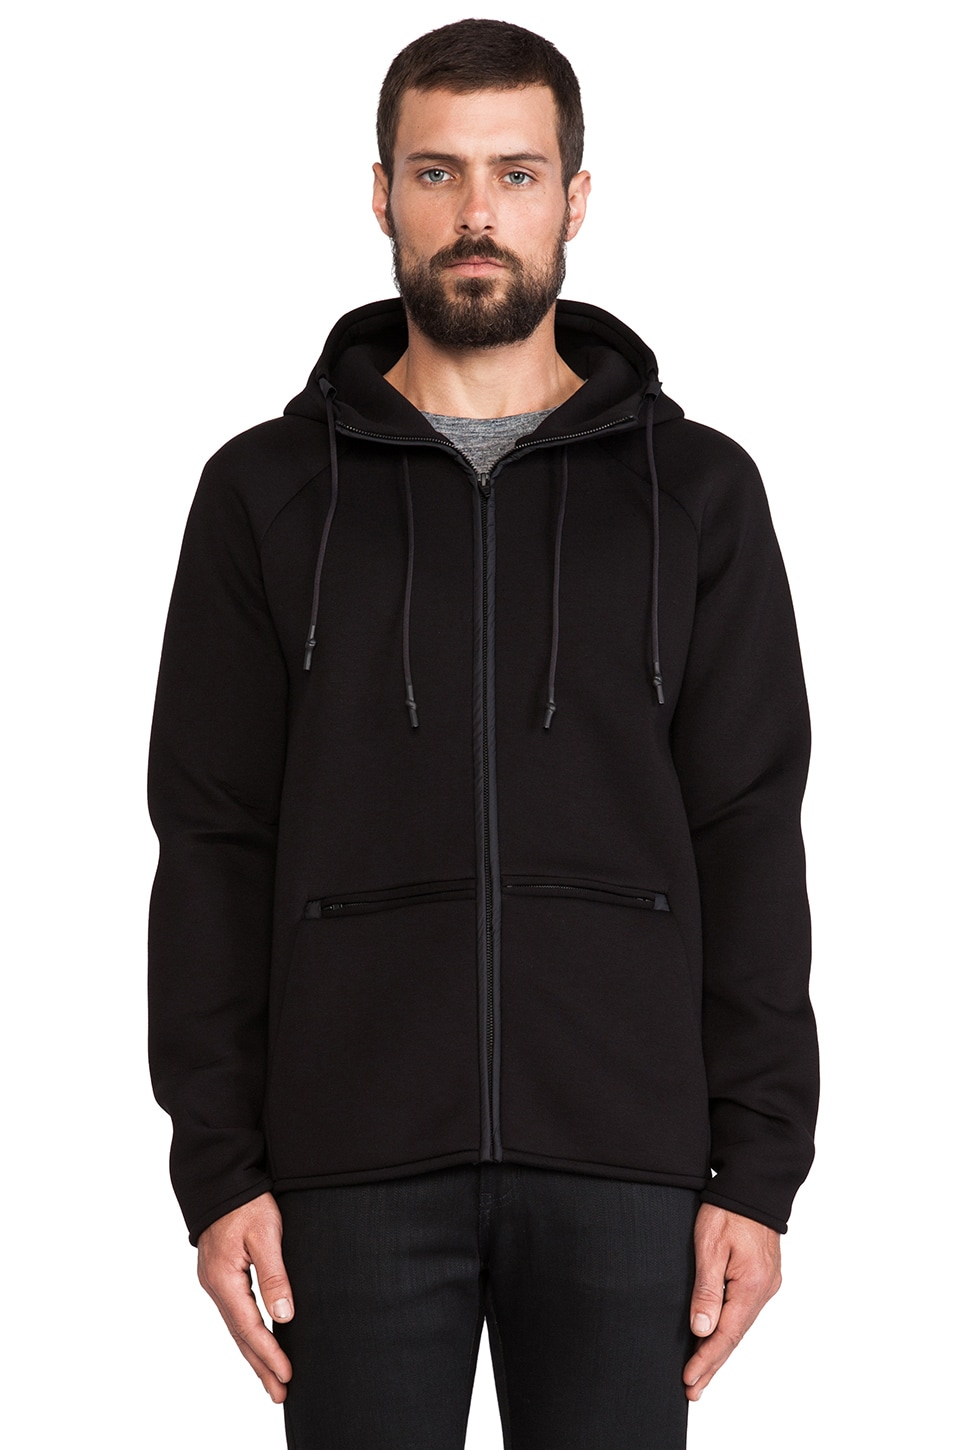 T by Alexander Wang Scuba Double Knit Hooded Sweatshirt in Black